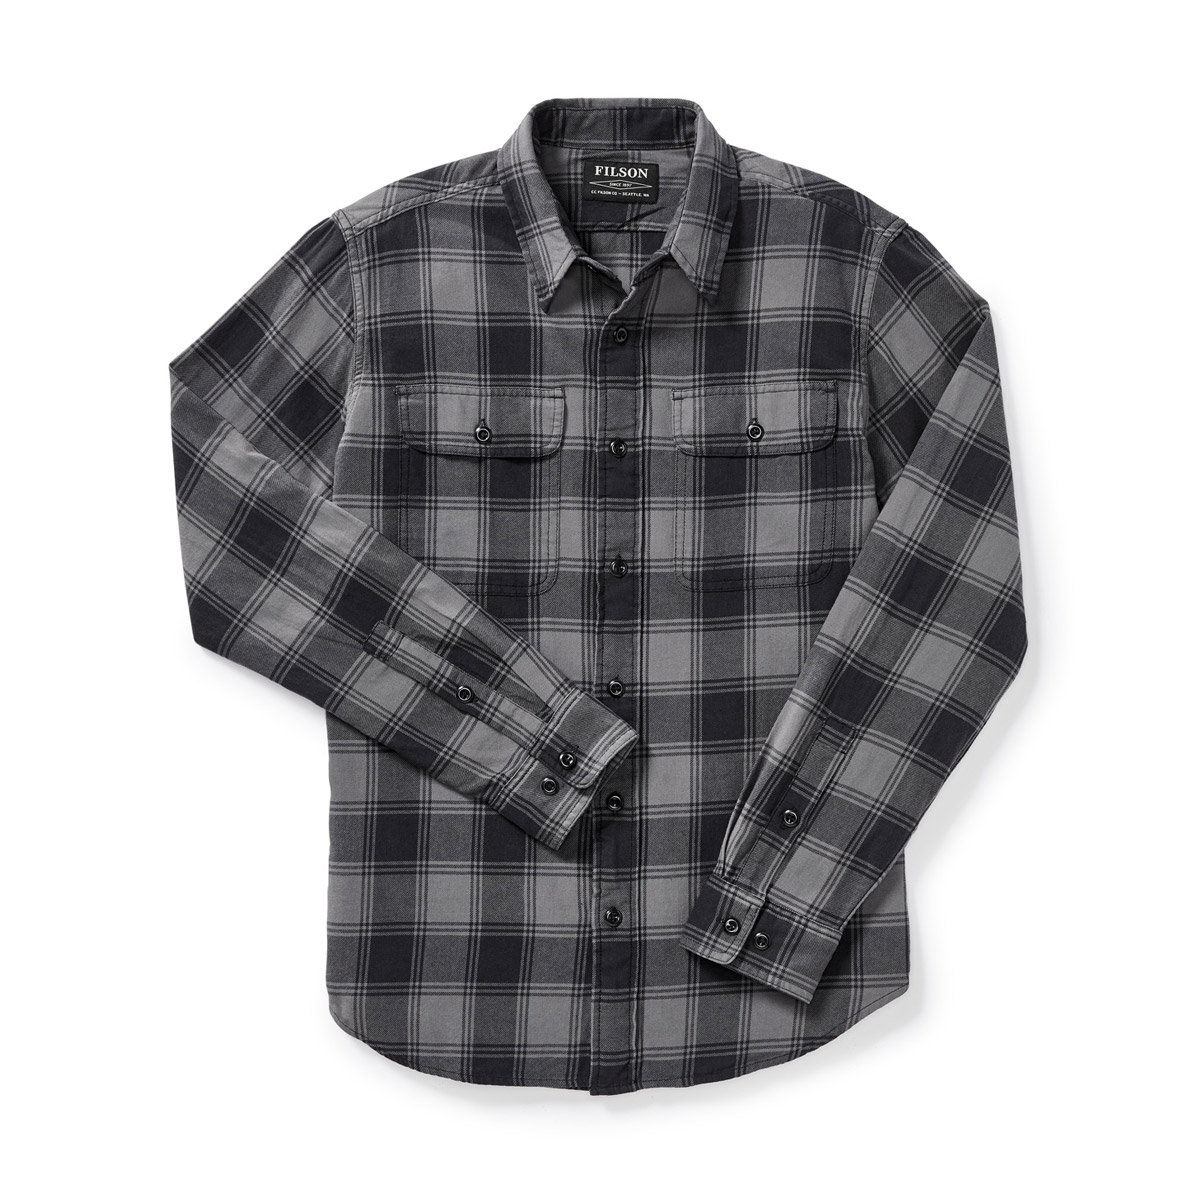 Filson Scout Shirt Gray/Black